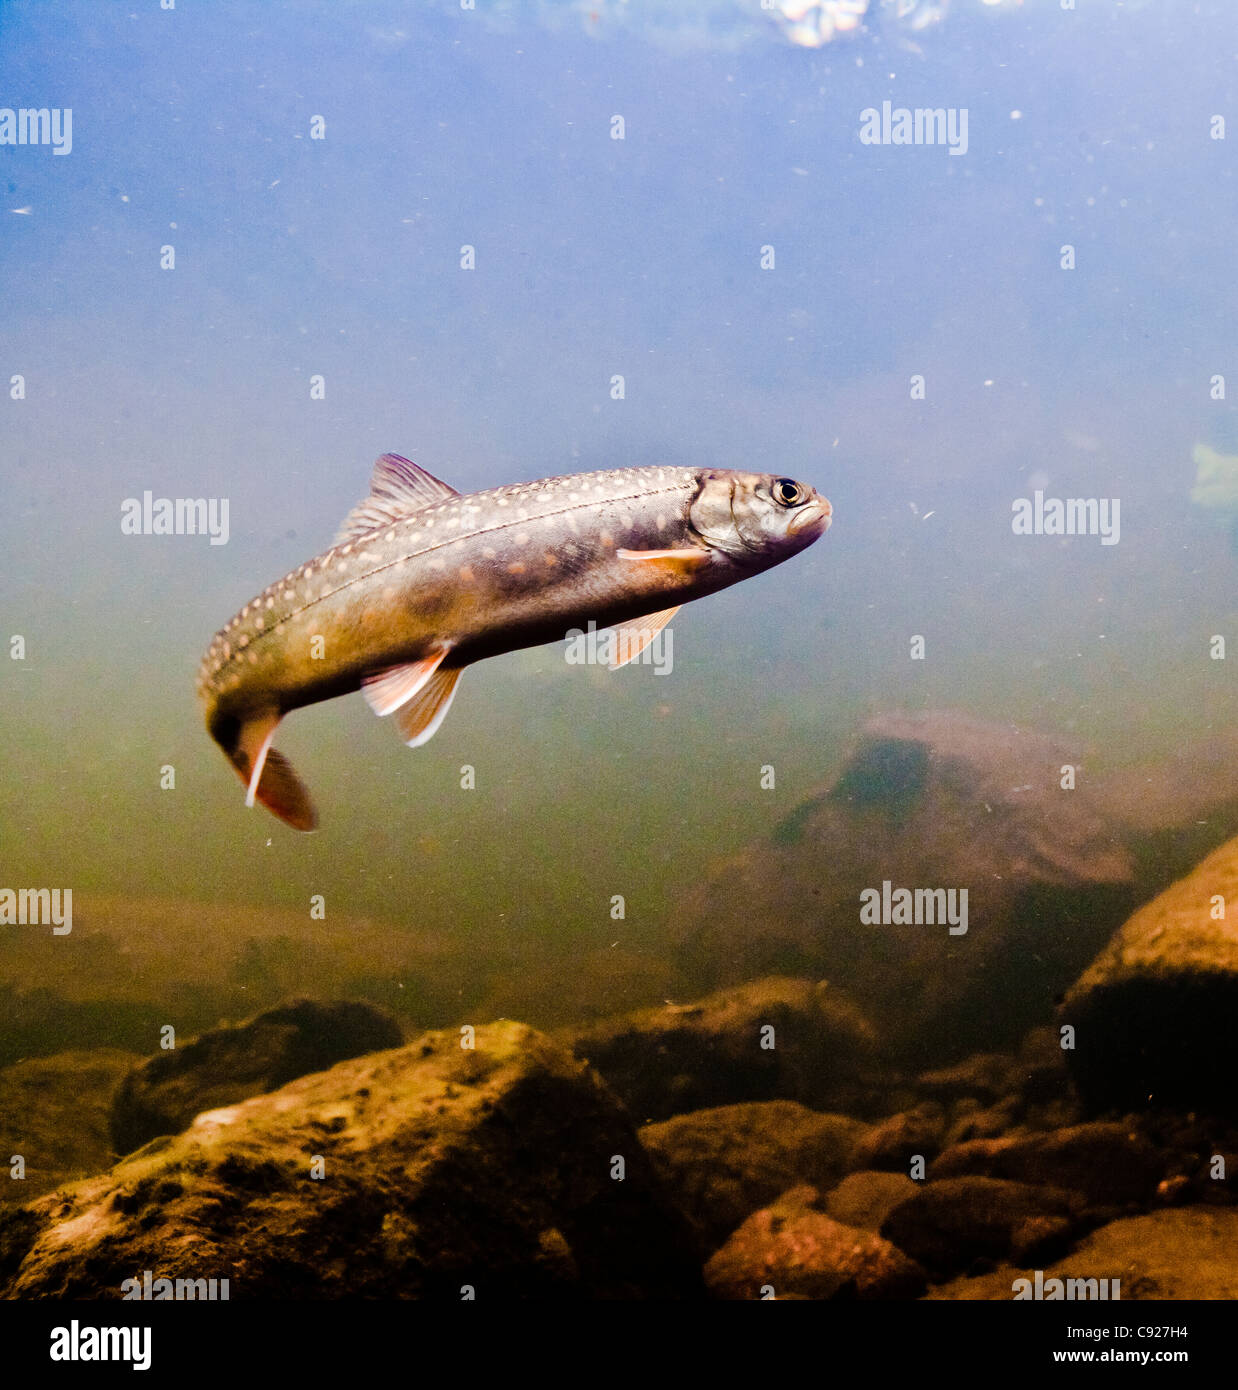 Underwater view of a Dolly Varden char in tannin stained water, Chugach National Forest, Copper River Delta, Alaska - Stock Image